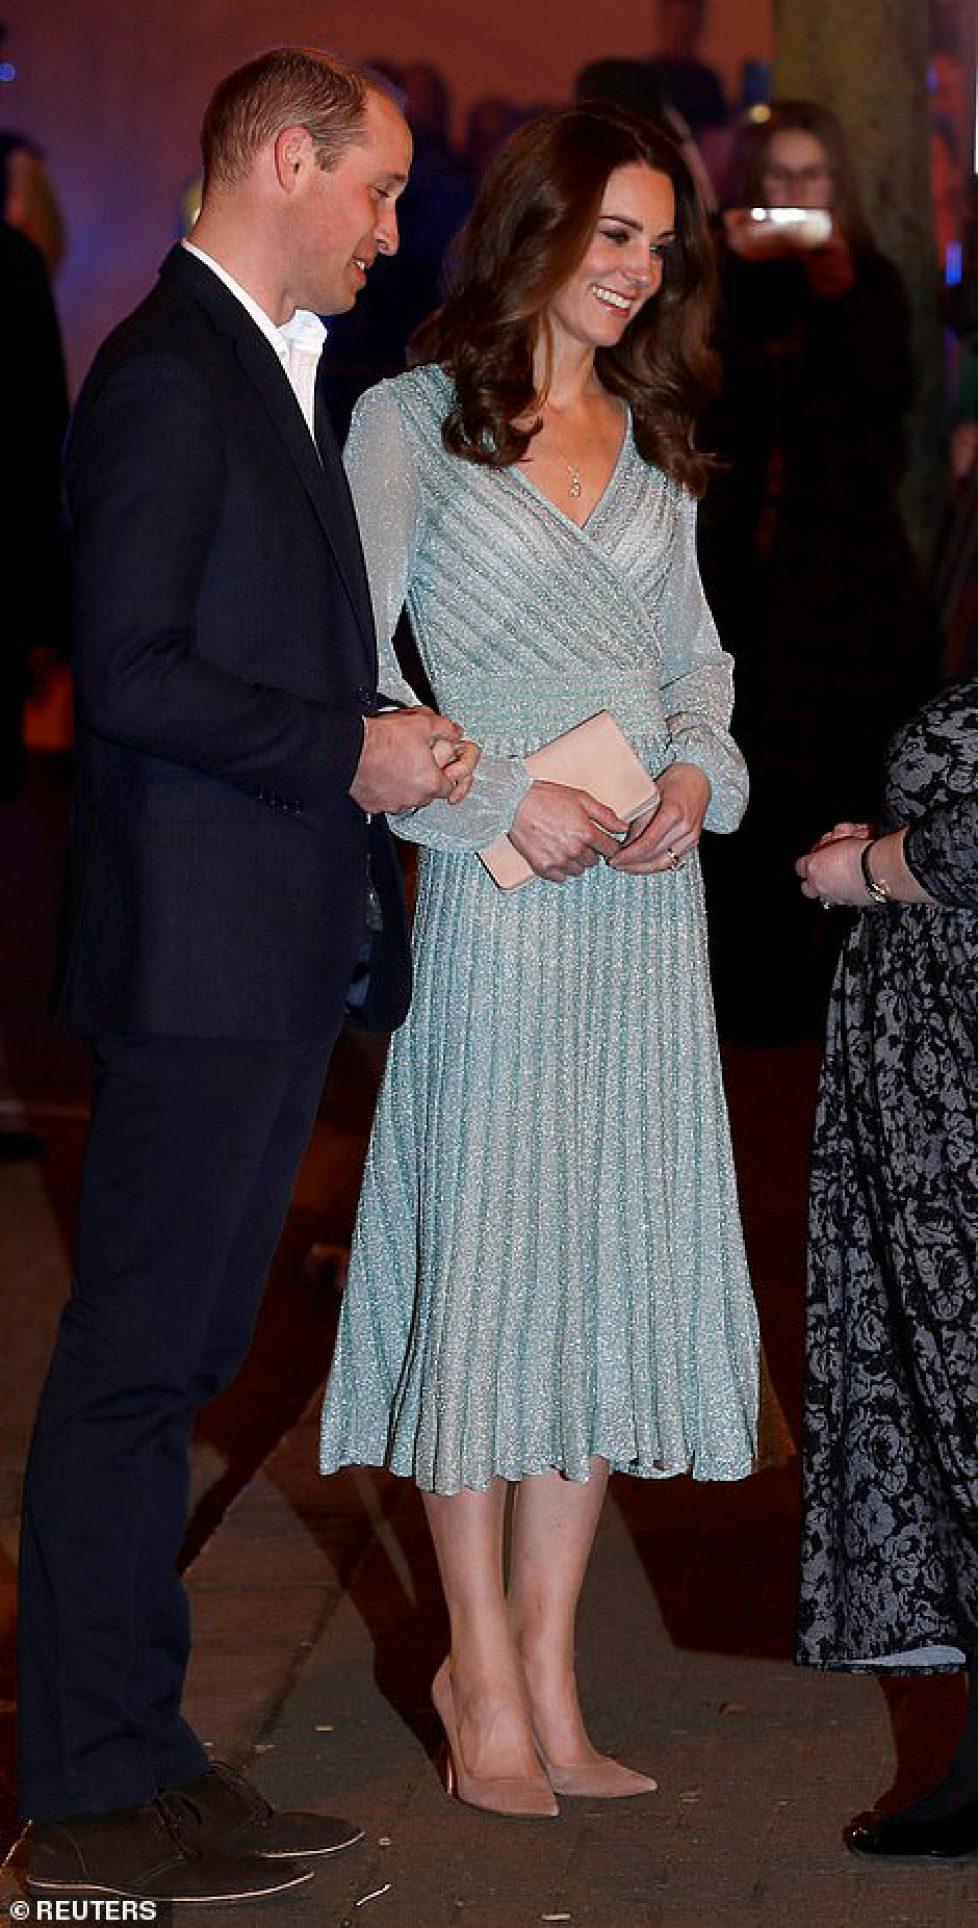 10374946-6752609-The_Duchess_of_Cambridge_wore_a_Missoni_gown_tonight_Kate_and_Wi-m-31_1551296152952